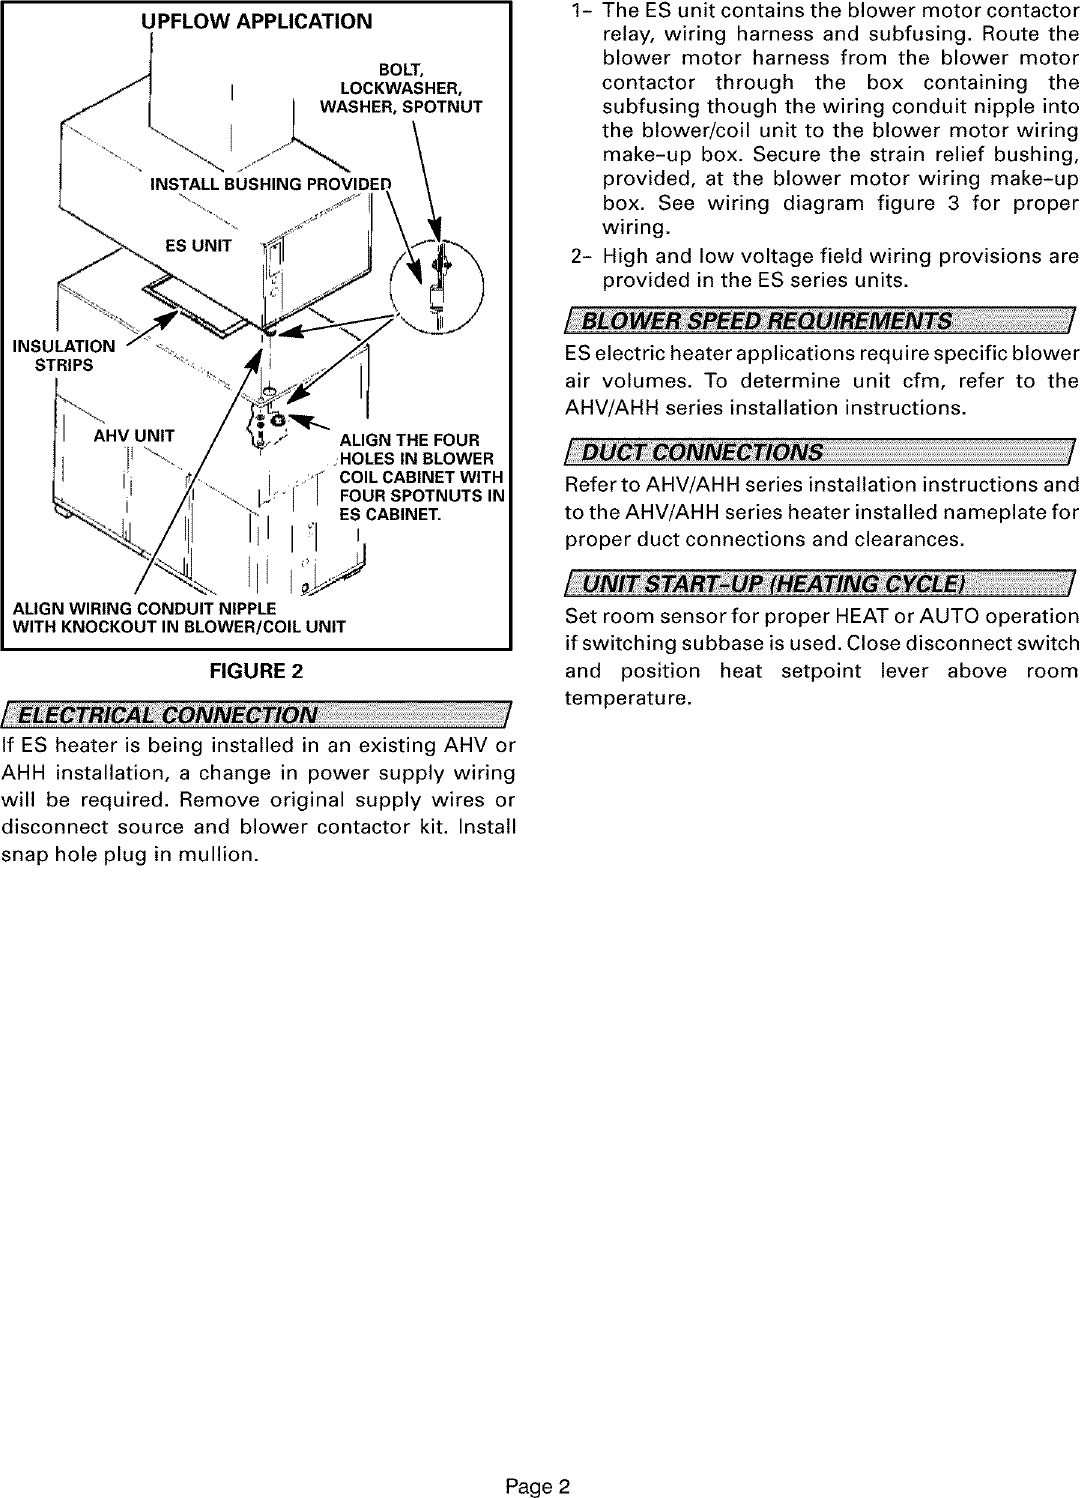 armstrong air handler wiring diagram • oasis dl co armstrong air handler auxiliary heater kit manual l0805595 carrier air conditioning wiring diagram at armstrong air